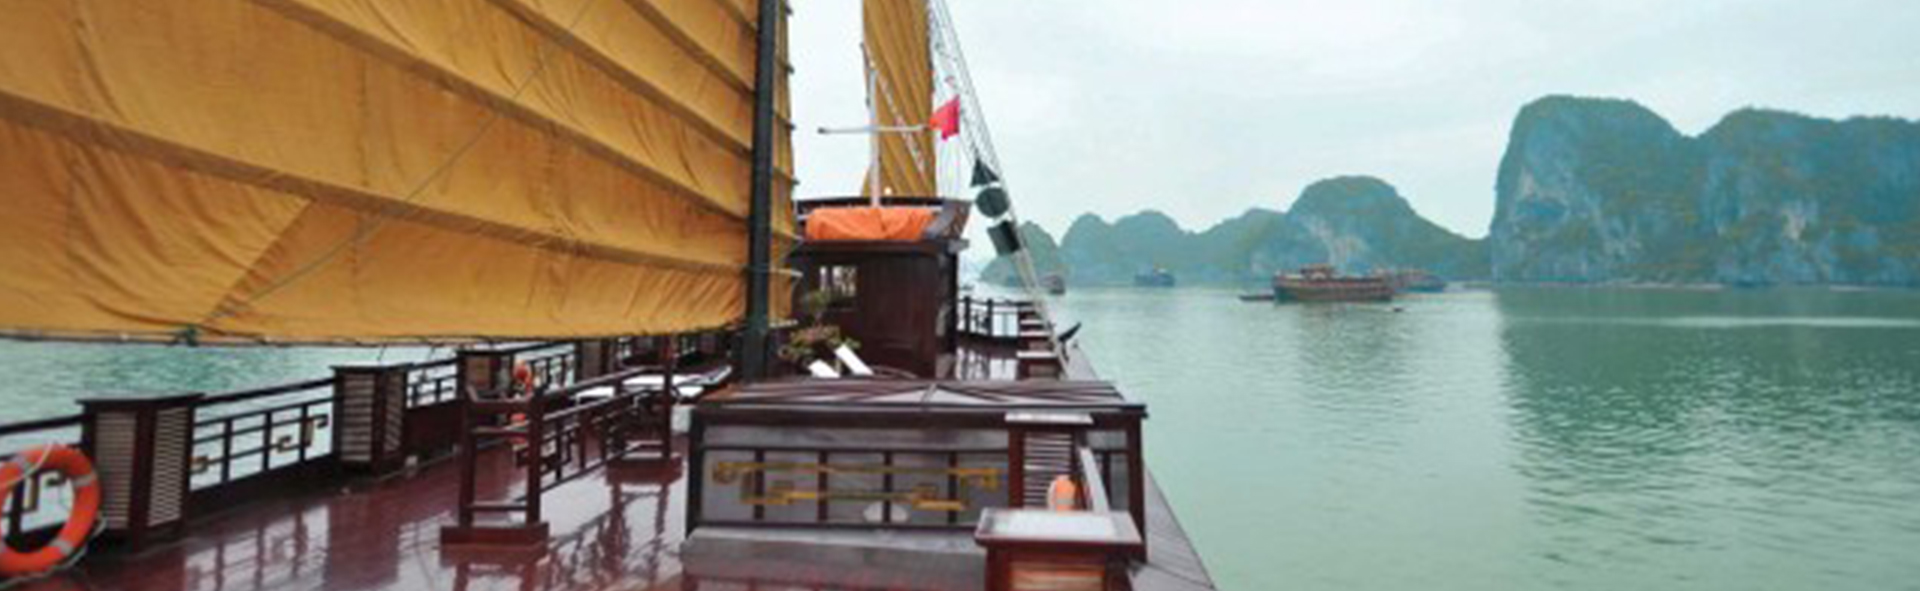 Ha Noi – Ha Long Bay Golf Trip (5 Days 4 Nights 3 Rounds)